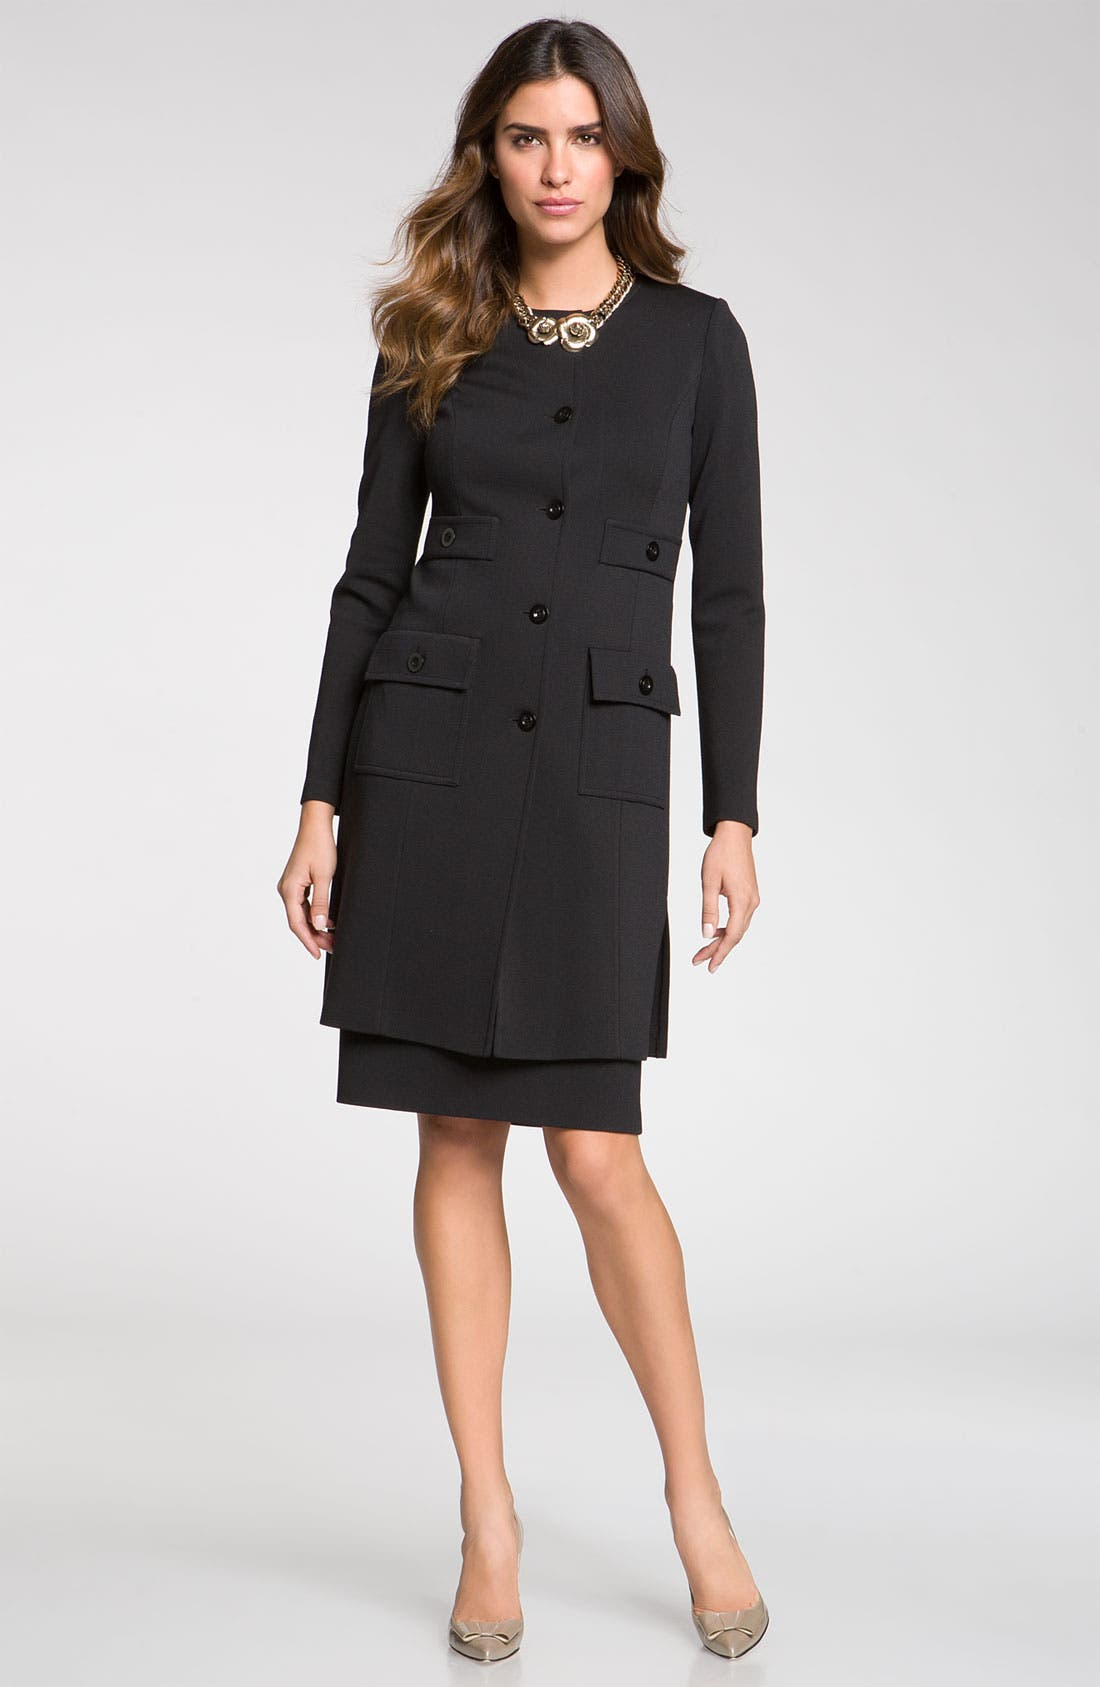 Main Image - St. John Collection Knit Jacket & Pencil Skirt